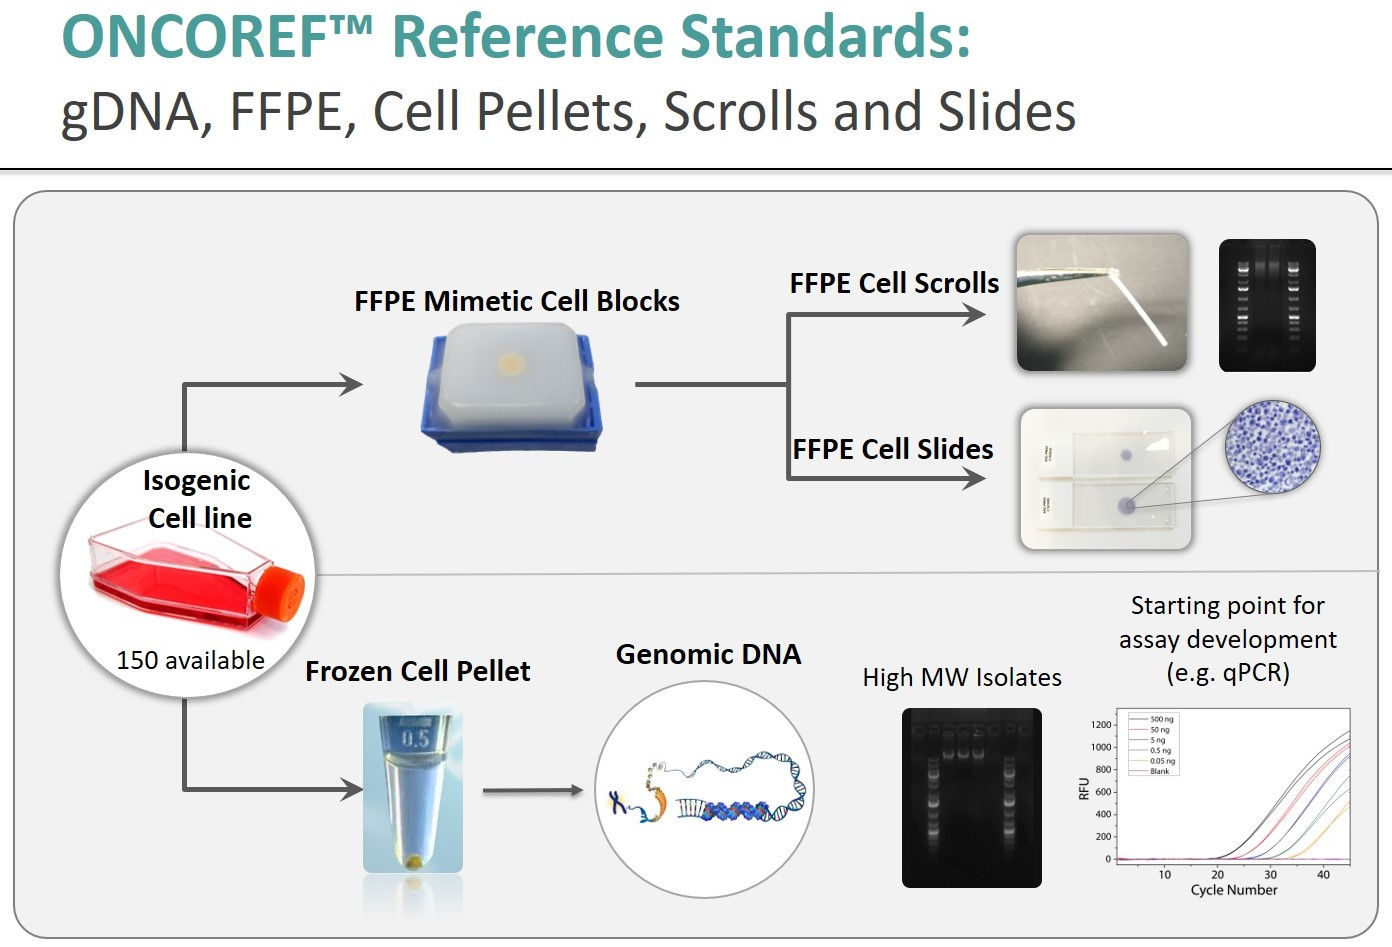 Oncoref reference standards product overview